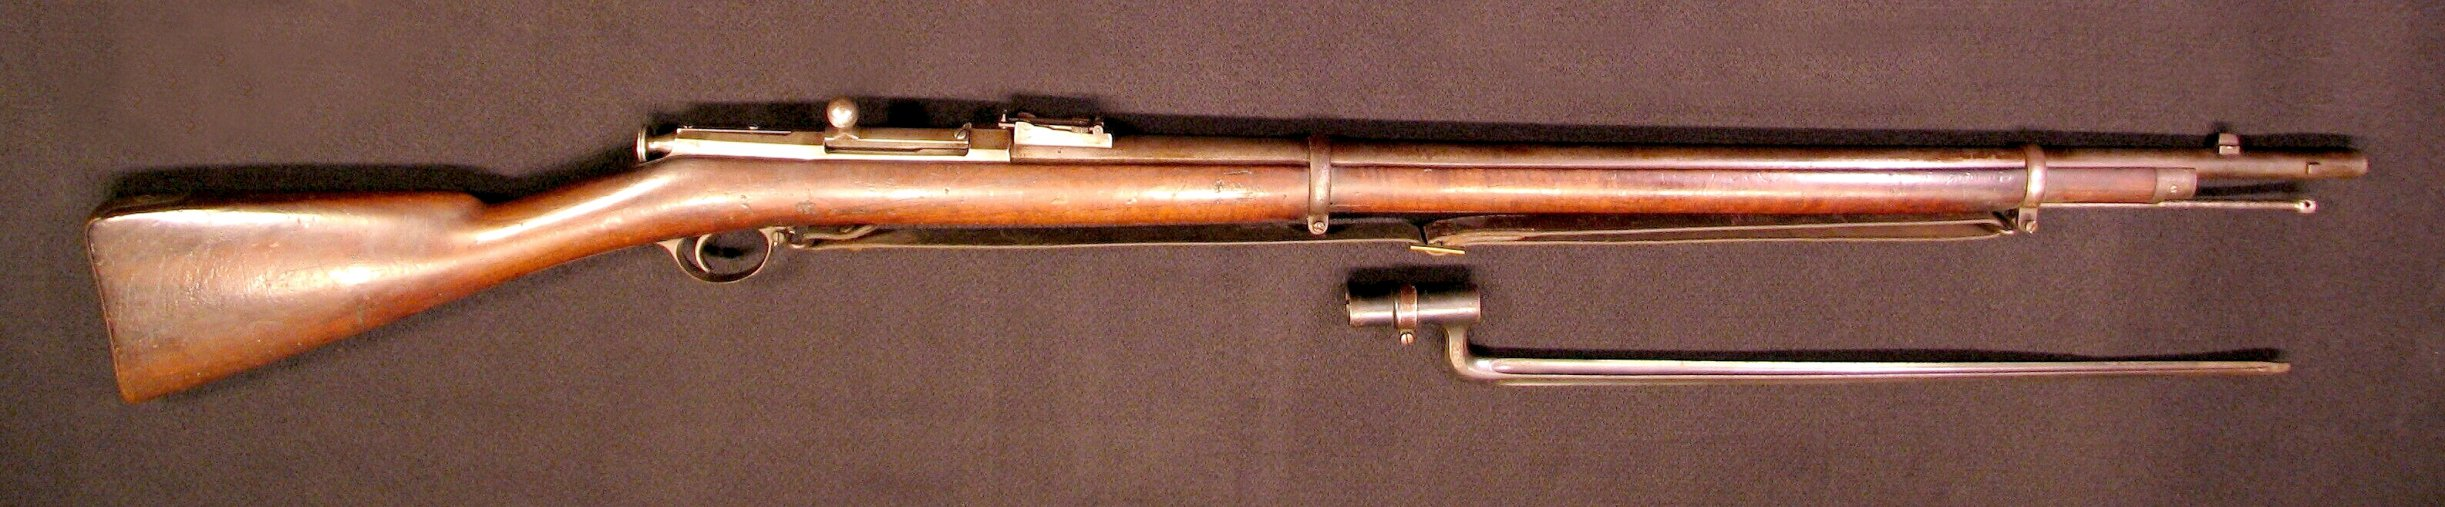 Click image for larger version.  Name:Russian M1870 Berdan II Infantry Rifle - 001A.jpg Views:48 Size:285.9 KB ID:1967417